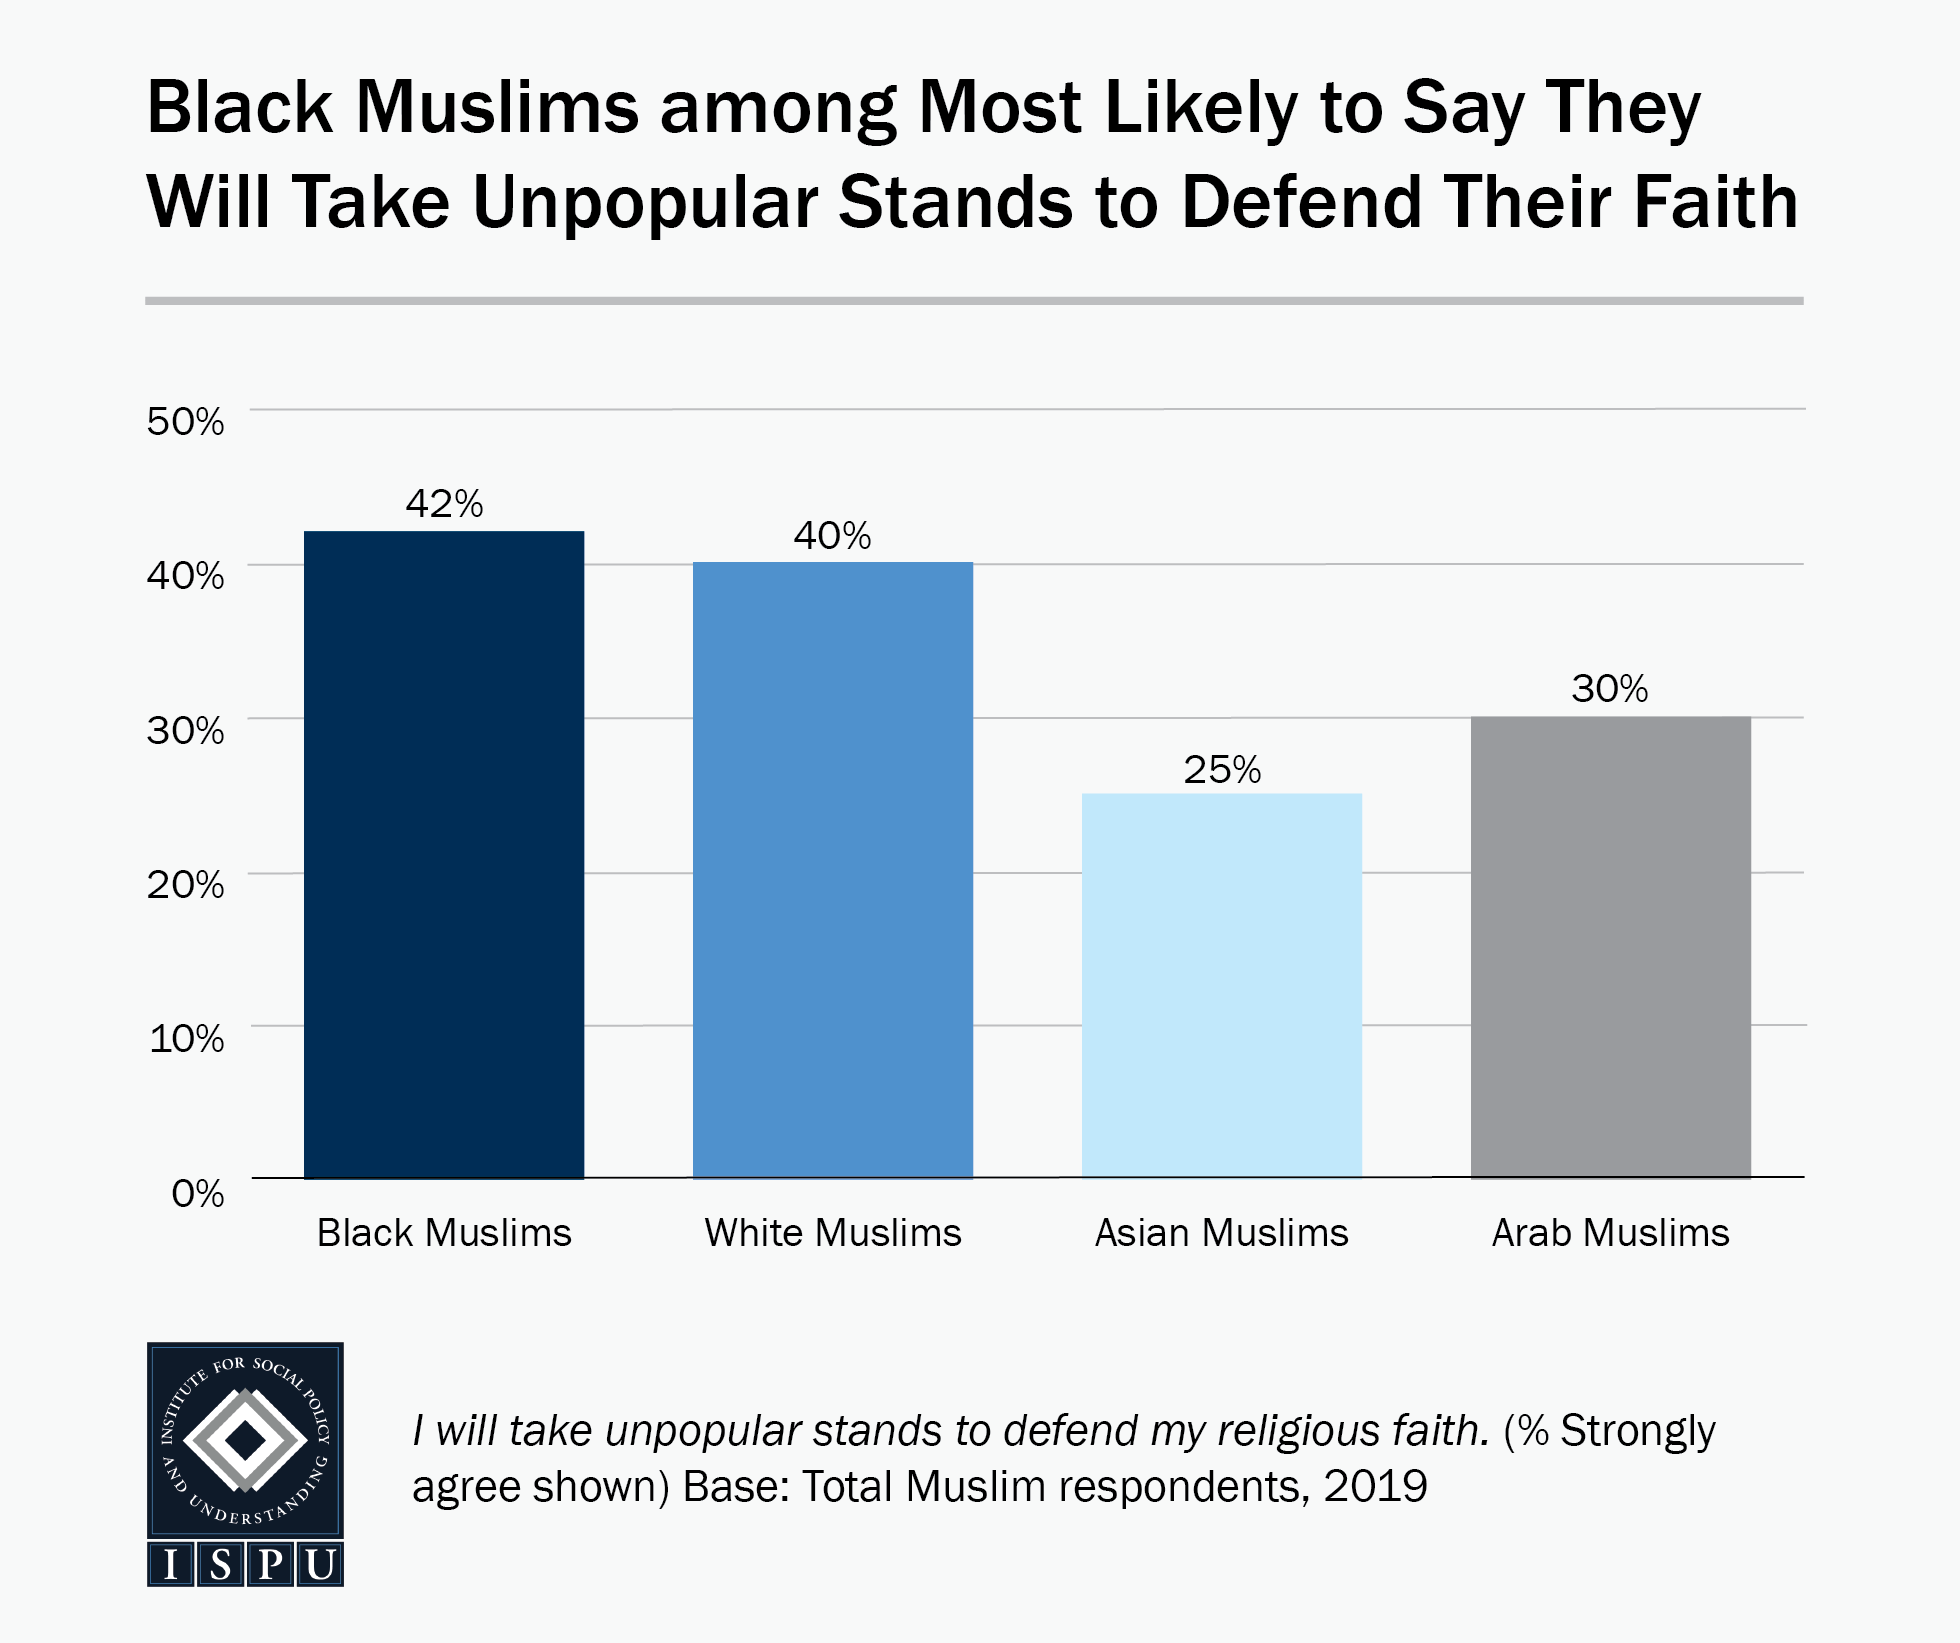 A bar graph showing that Black Muslims (42%) are among the most likely to say they will take unpopular stands to defend their faith